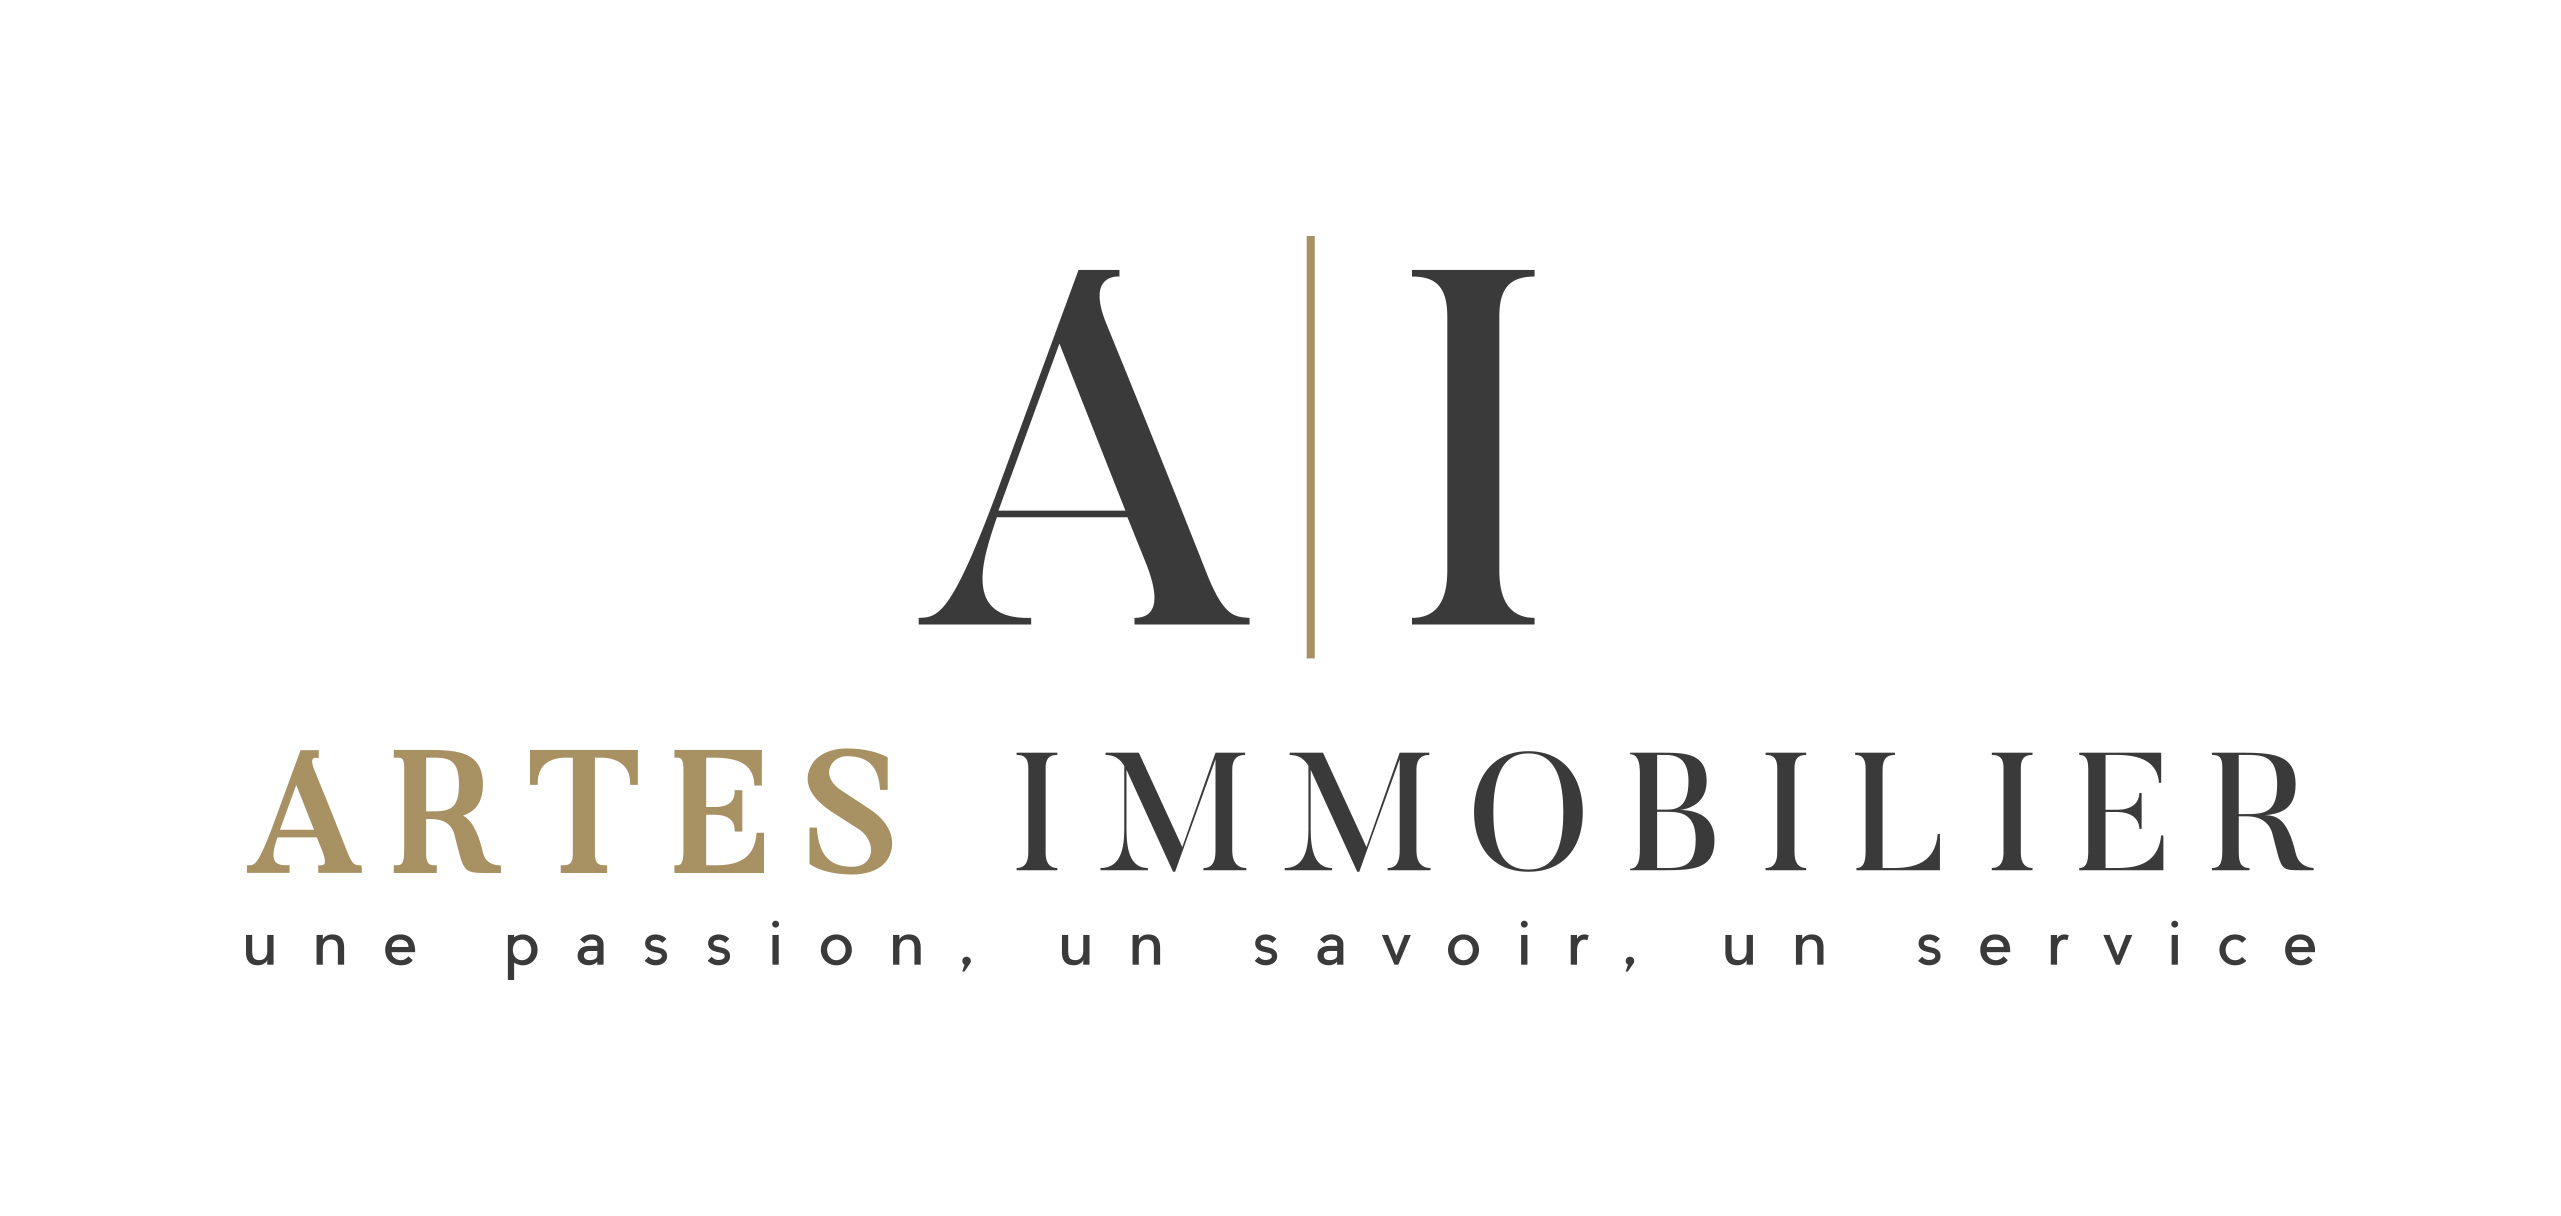 ARTES IMMOBILIER